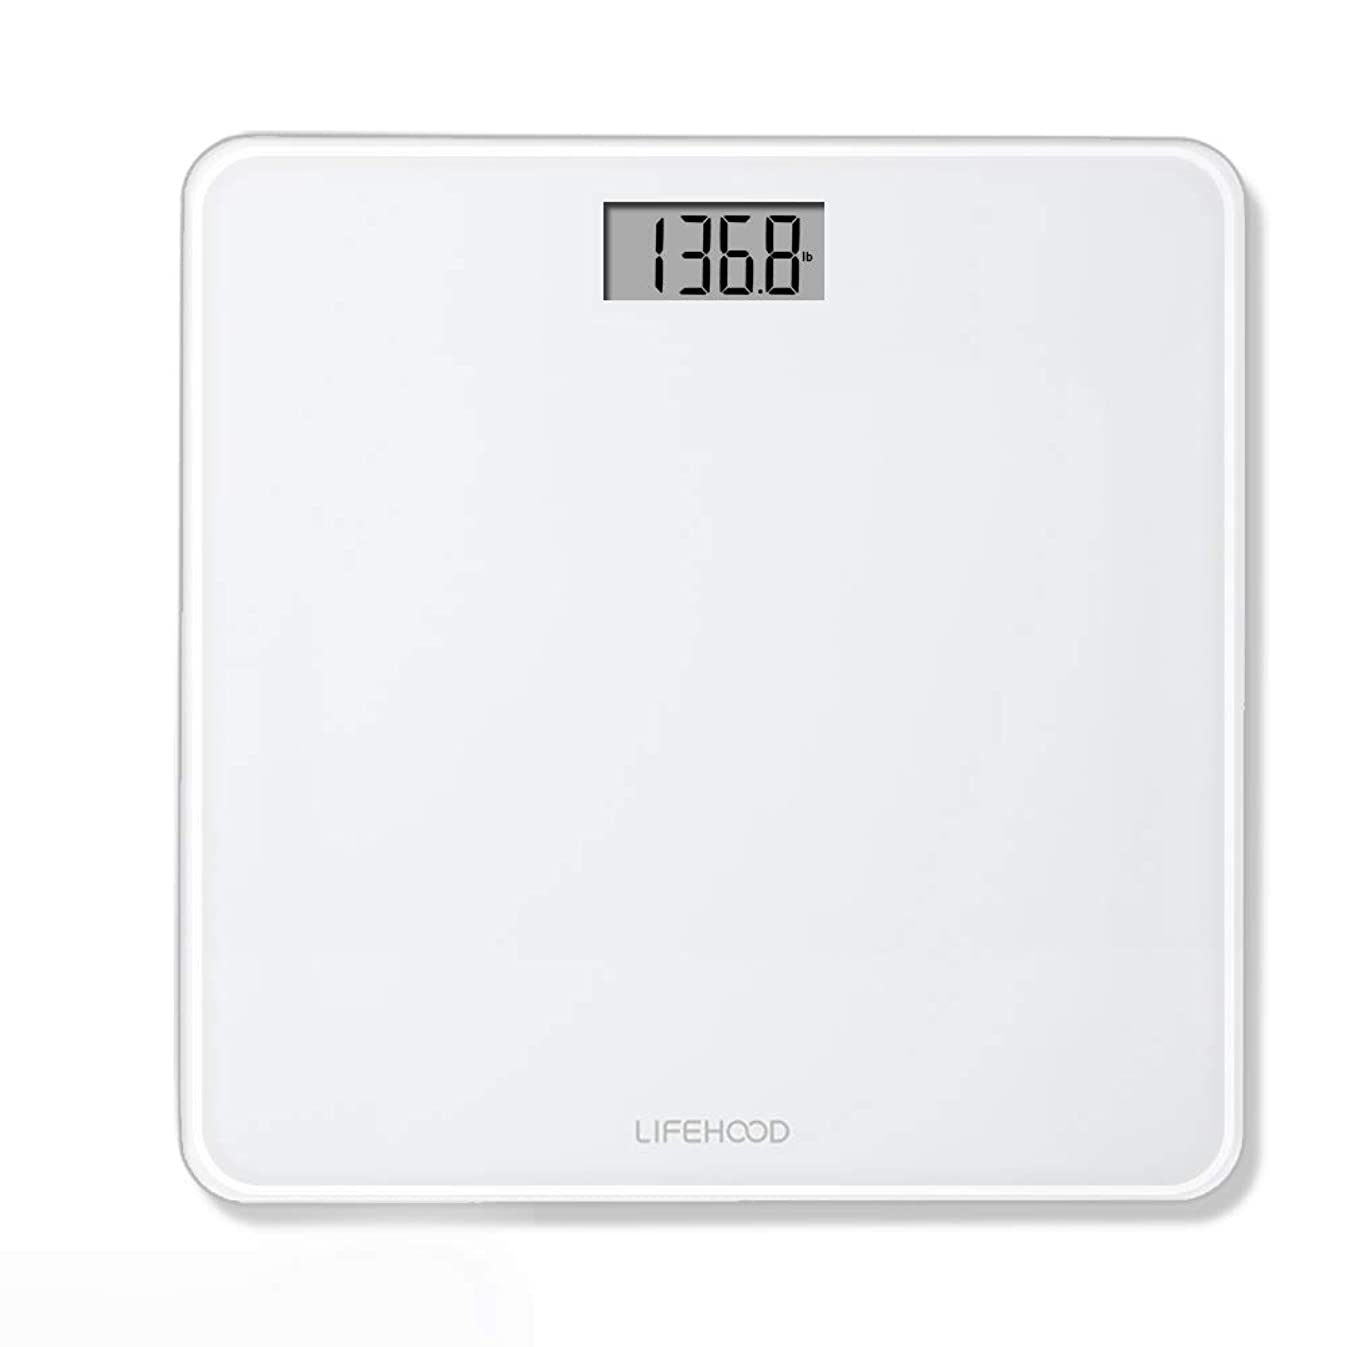 Scales for Digital Weight – 4 High Precision Sensors Body Weight Scale with Step On & Auto Calibrated & Auto ON/OFF Technology, Wide Sturdy Tempered Glass, Round Corner Design, 400 pounds